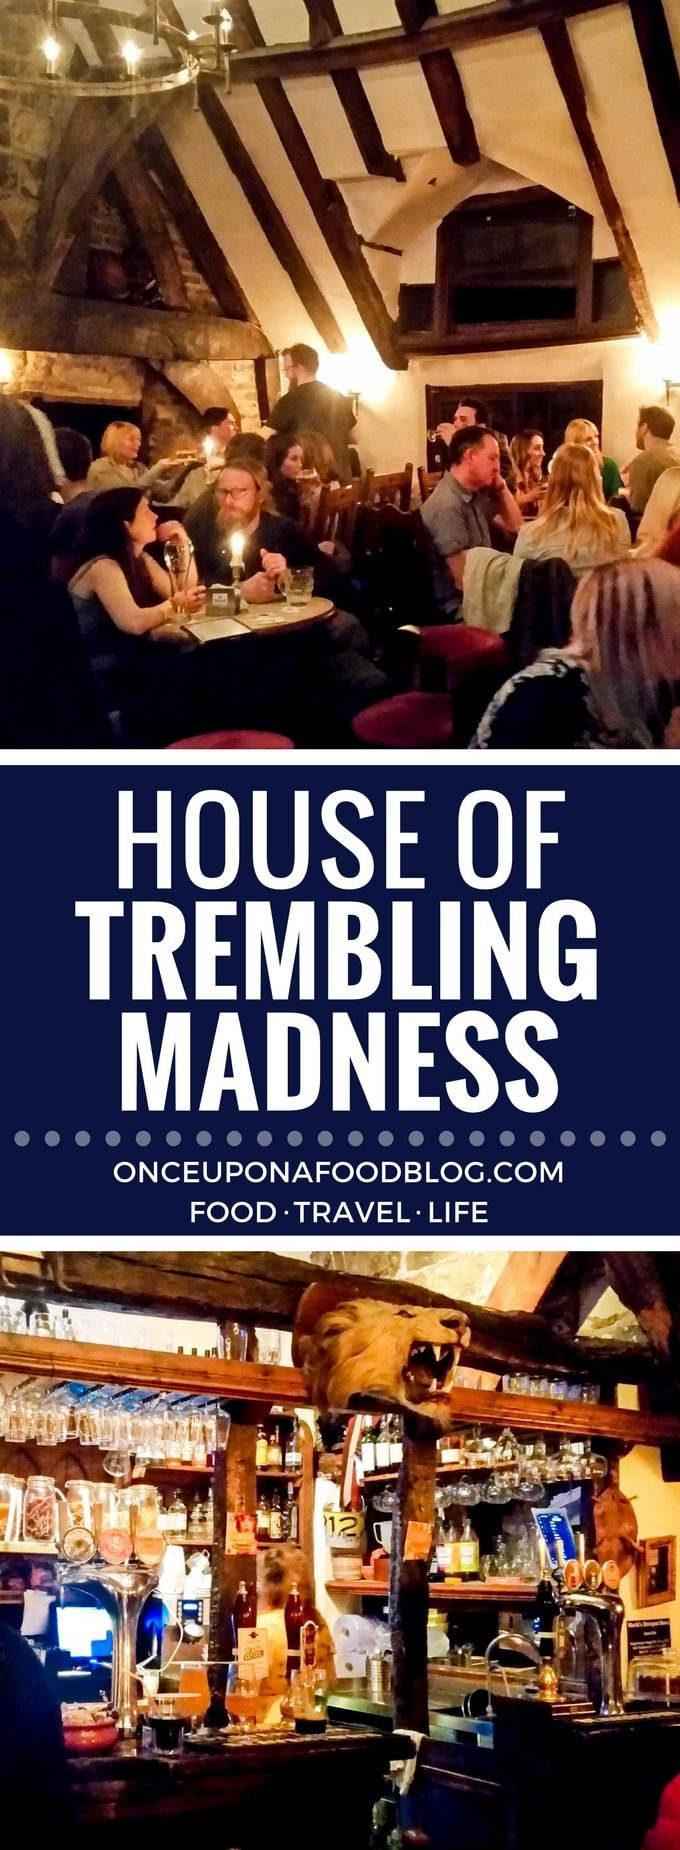 """We were lucky enough to find this quirky medieval beer house on a recent trip to York. The amazing range of beers, fantastic local food and warm atmosphere all come together to make this an unmissable jewel in York's crown. #houseoftremblingmadness #tremblingmadness #york #medievalpub #medievalbeerhouse #beerhouse"""" width="""